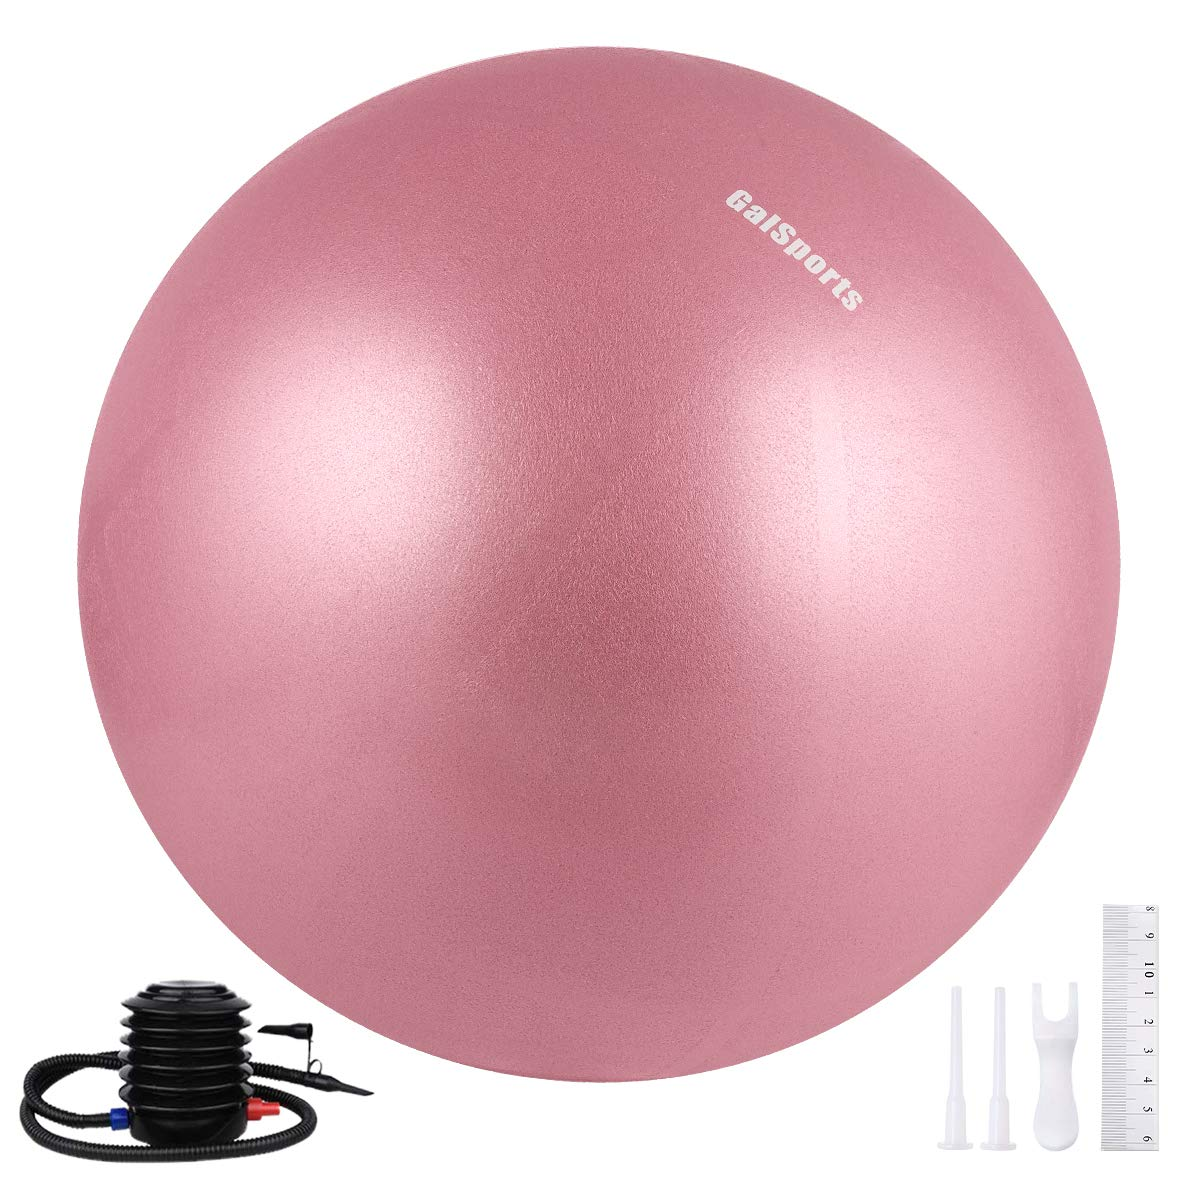 Galsports Yoga Stability Ball (Multiple Colors) for Balance, Exercise Ball for Fitness & Birthing, Anti-Burst Stability Ball with Quick Pump for Ball Chair, Core Strength (Dusty Rose, L (58-65cm))